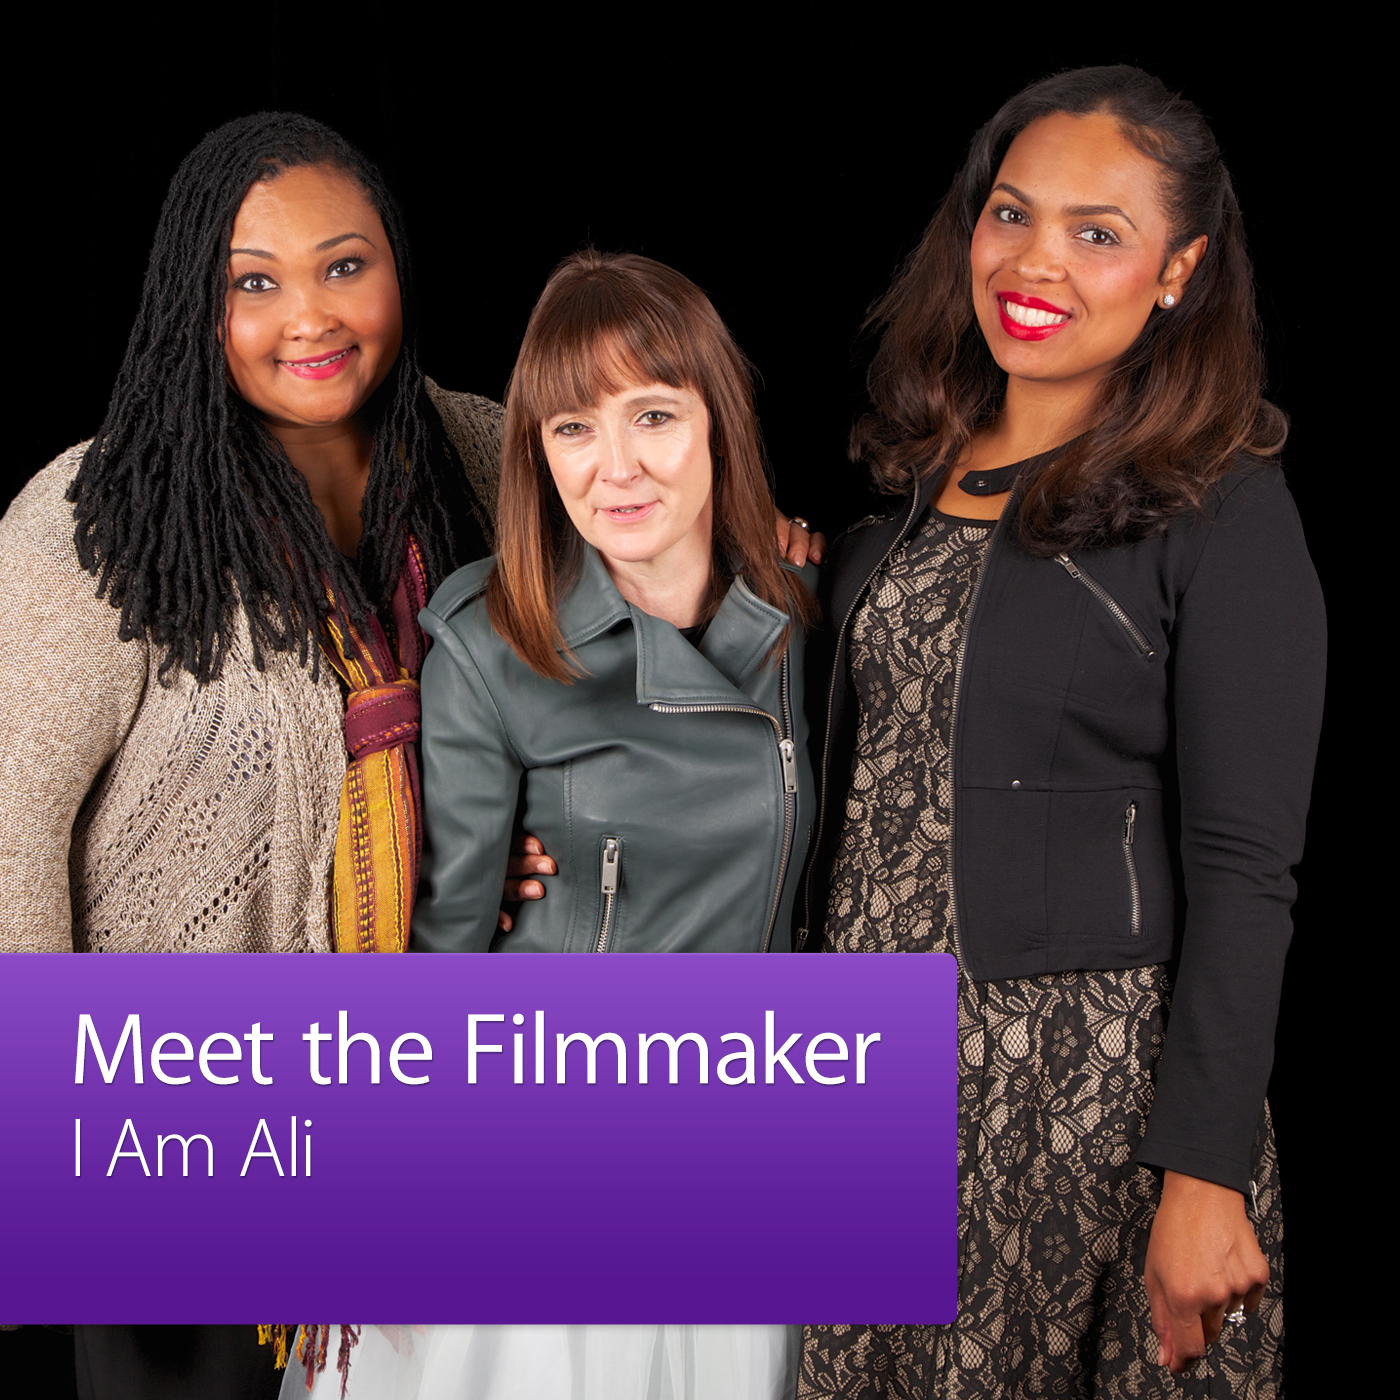 I Am Ali: Meet the Filmmaker